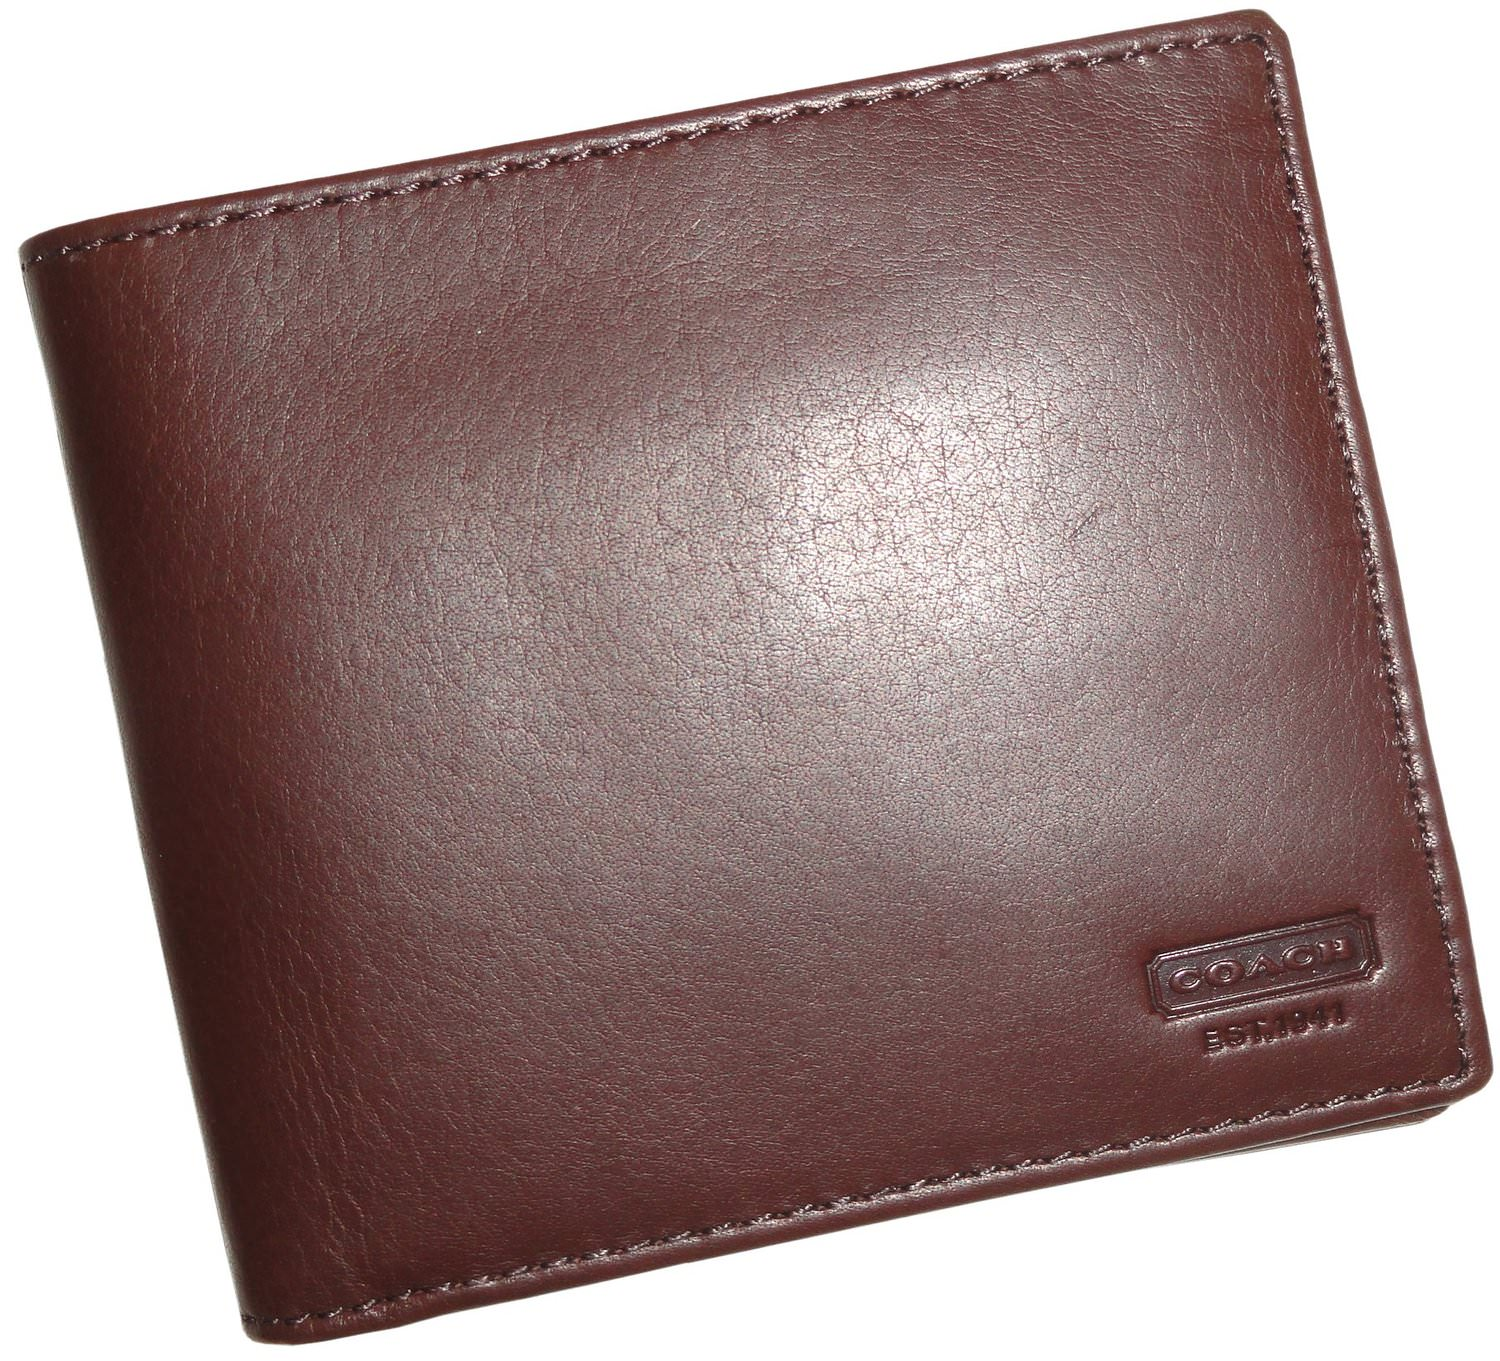 brown leather double billfold wallet4